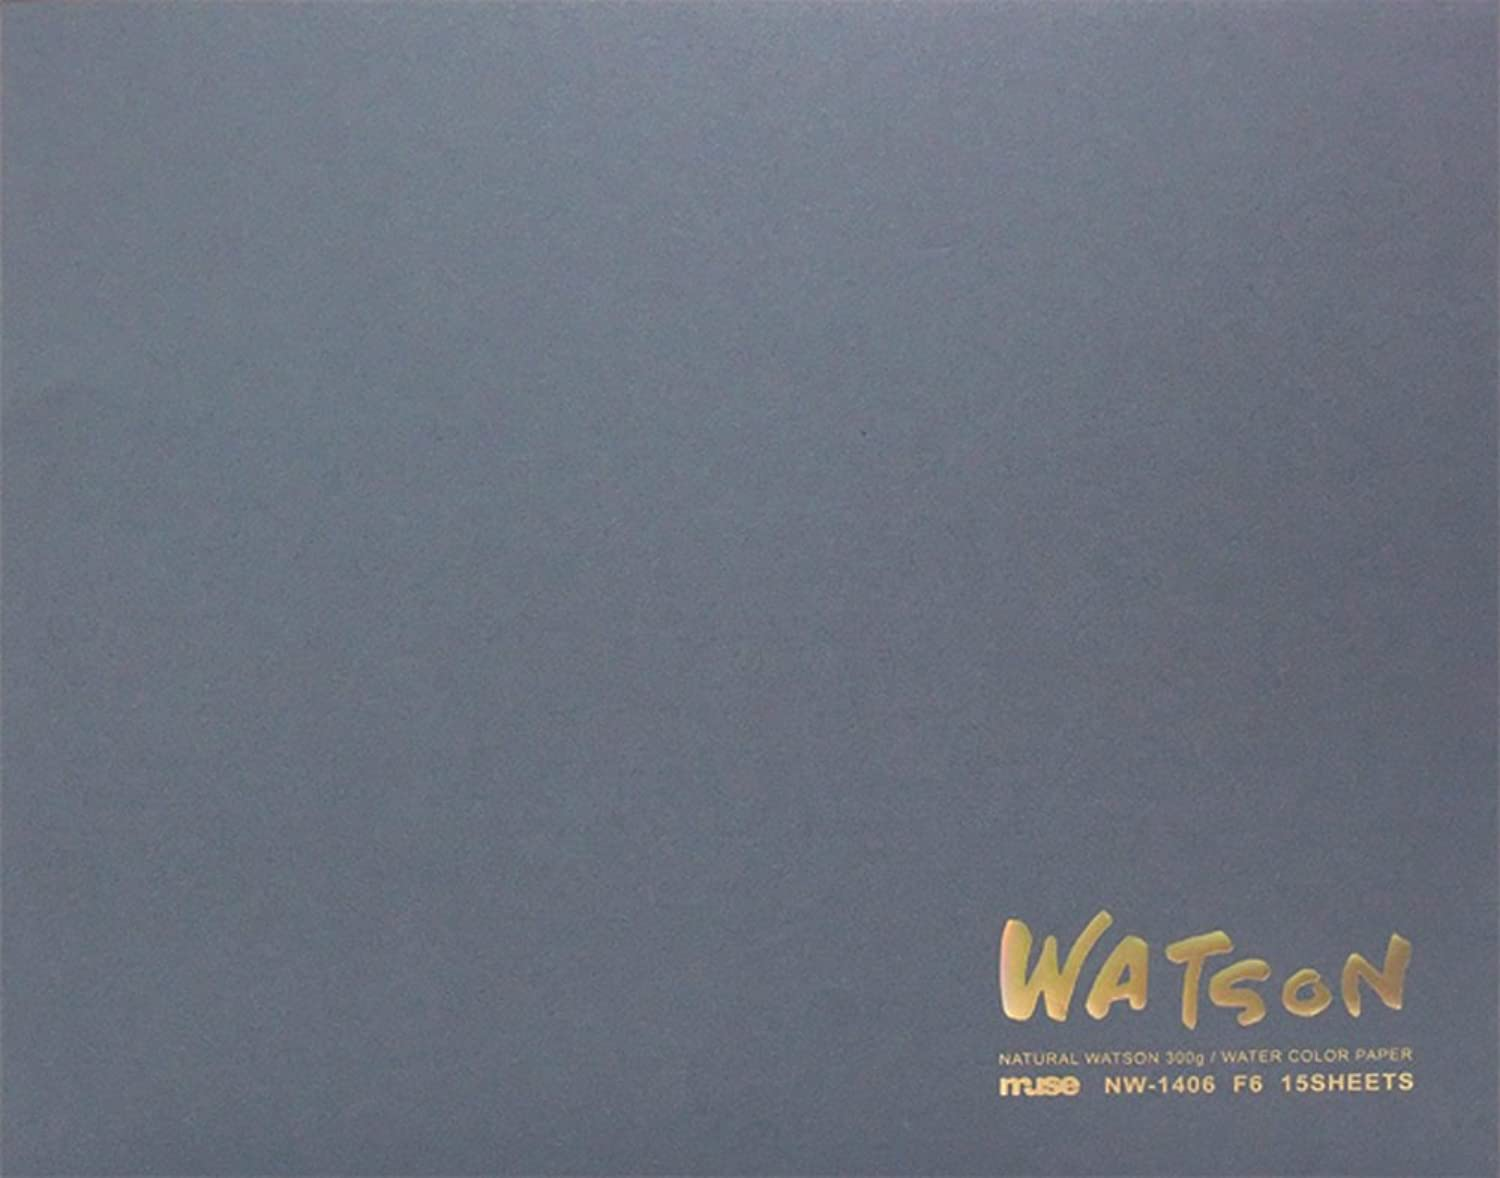 Muse watercolor paper Watson block F8 300g Natural 15 pieces NW-1408 F8